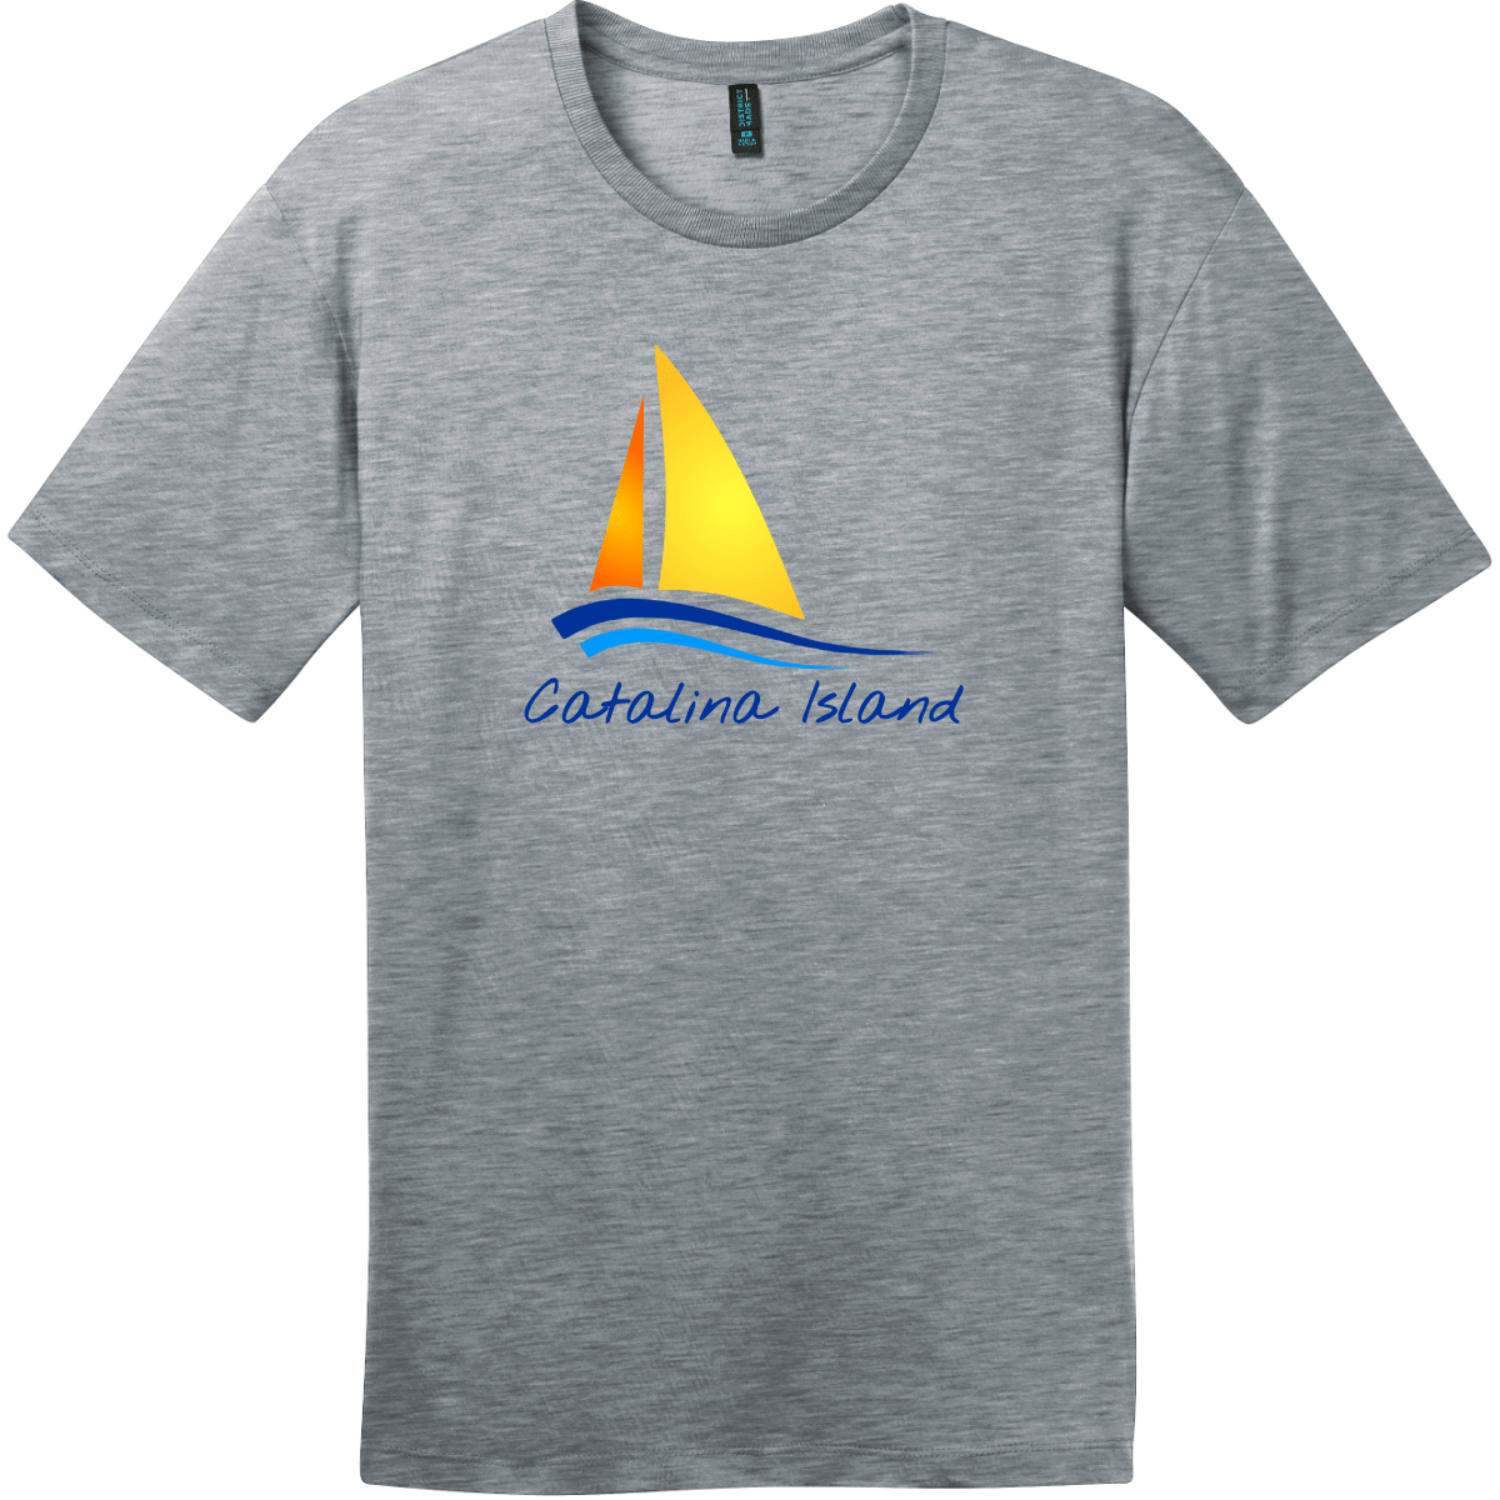 Catalina Island Sailboat T-Shirt Heathered Steel District Perfect Weight Tee DT104